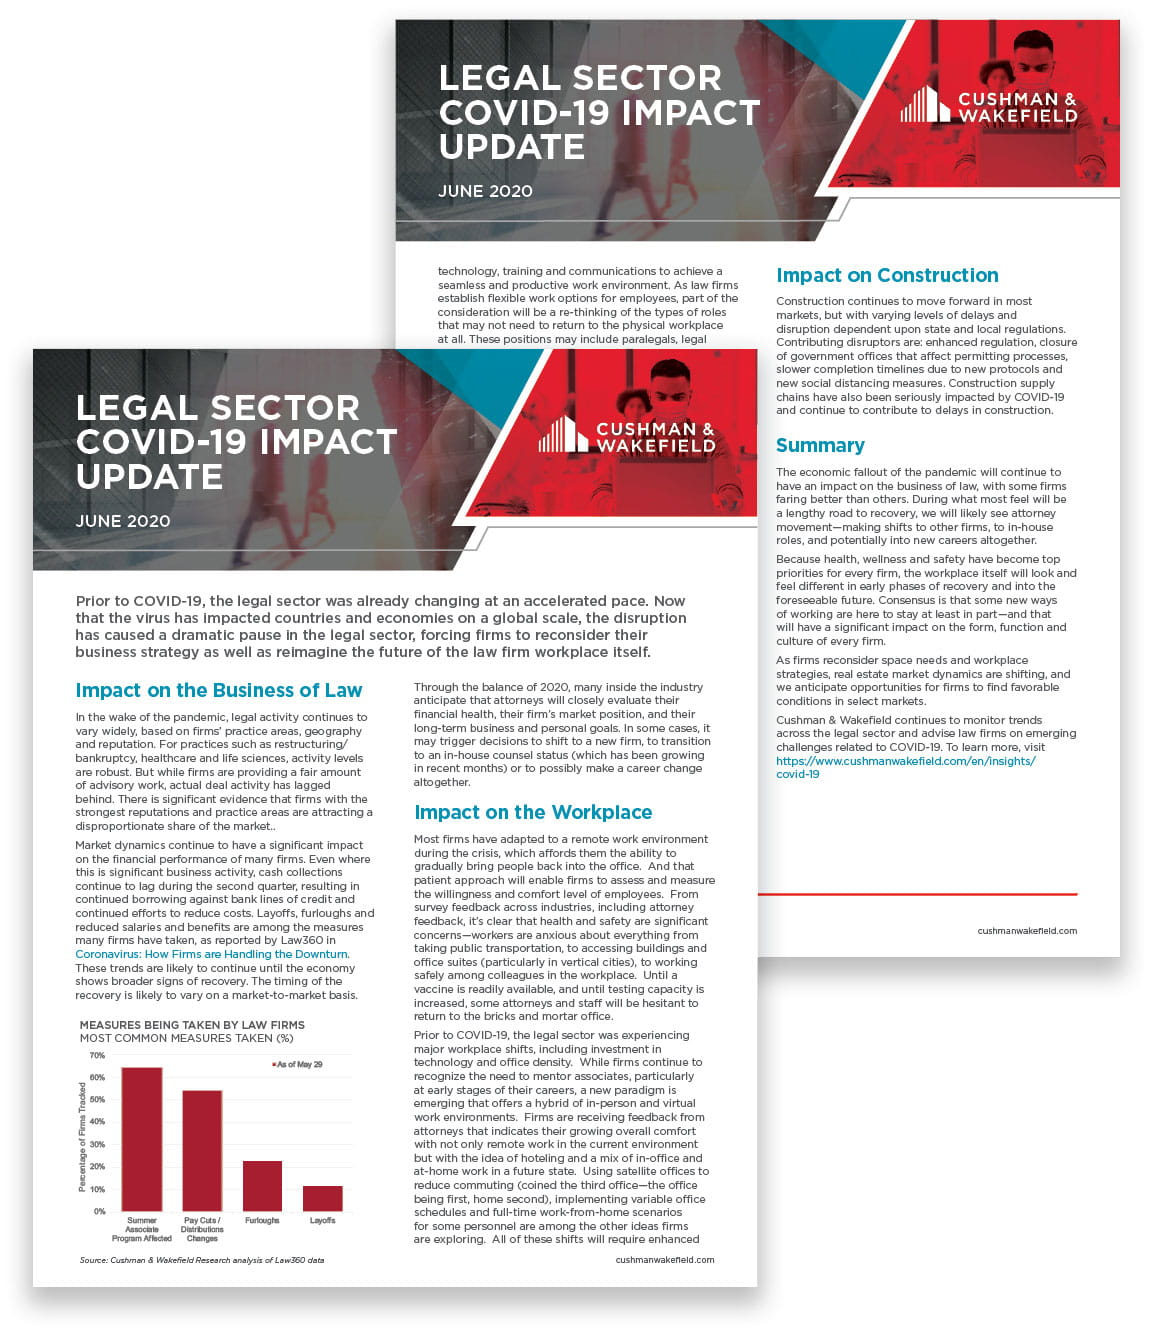 Legal Sector Impact Update (image)